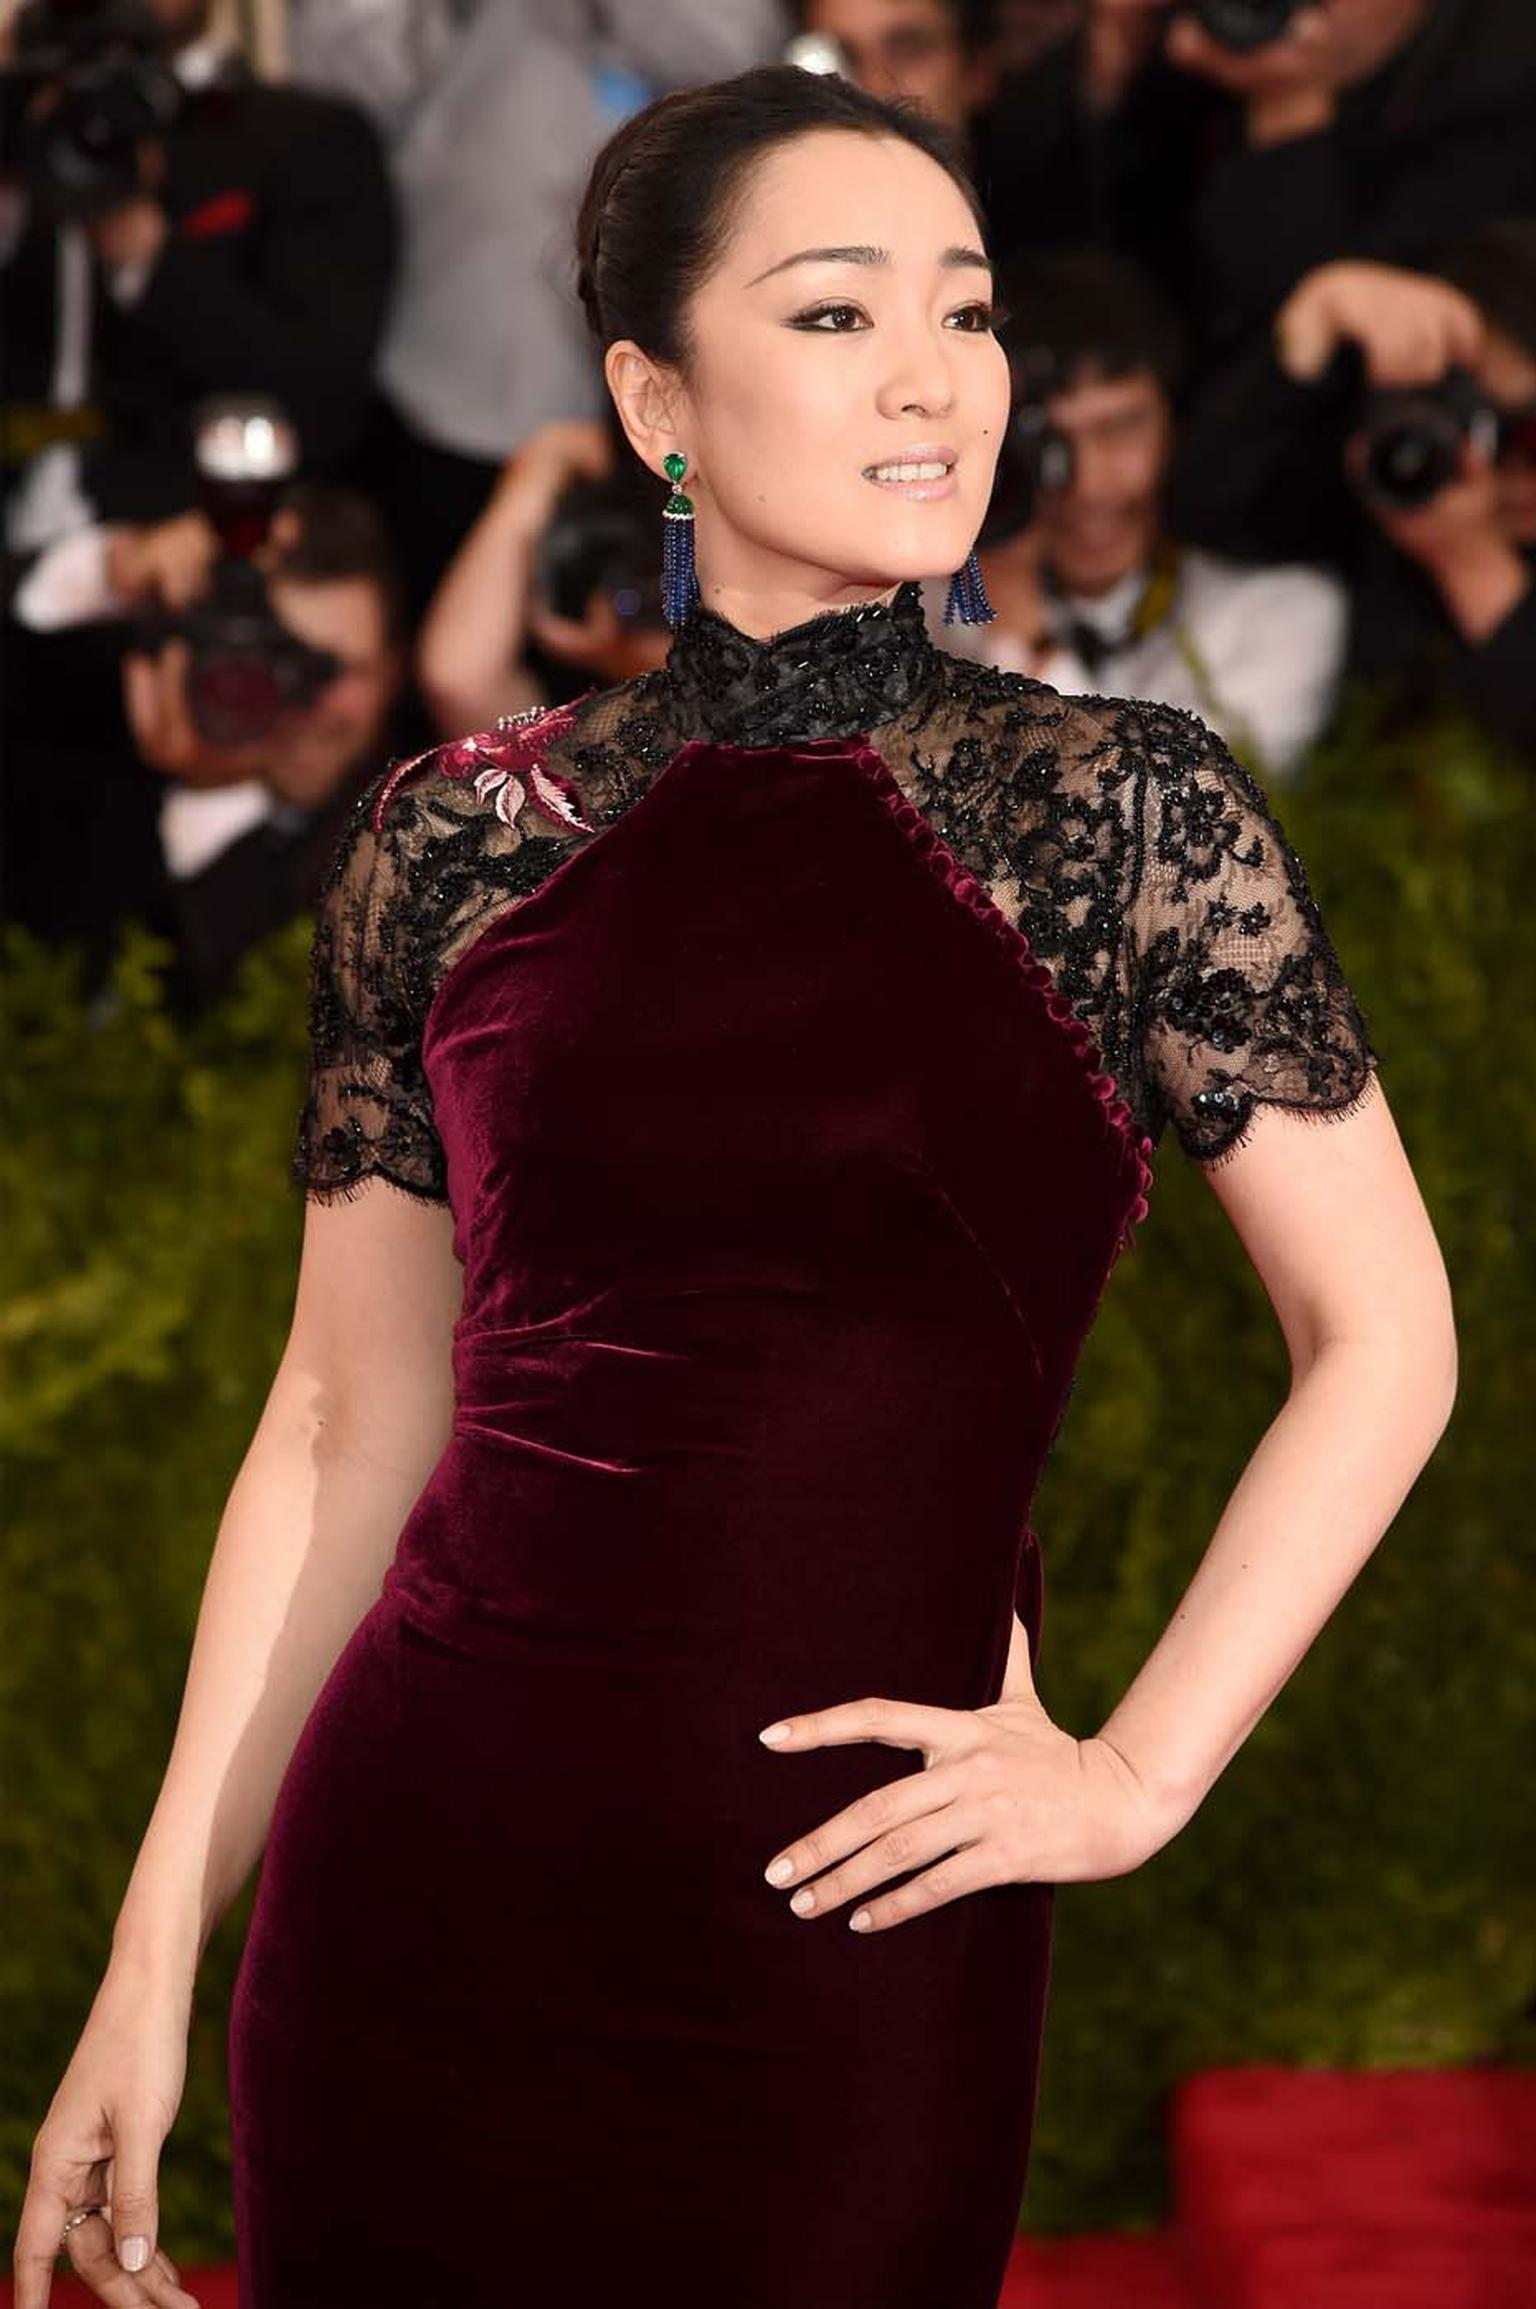 Actress and event co-chair, Gong Li, wore a pair of blue sapphire and emerald earrings by Piaget, which provided a dramatic contrast to her deep red Roberto Cavalli dress.